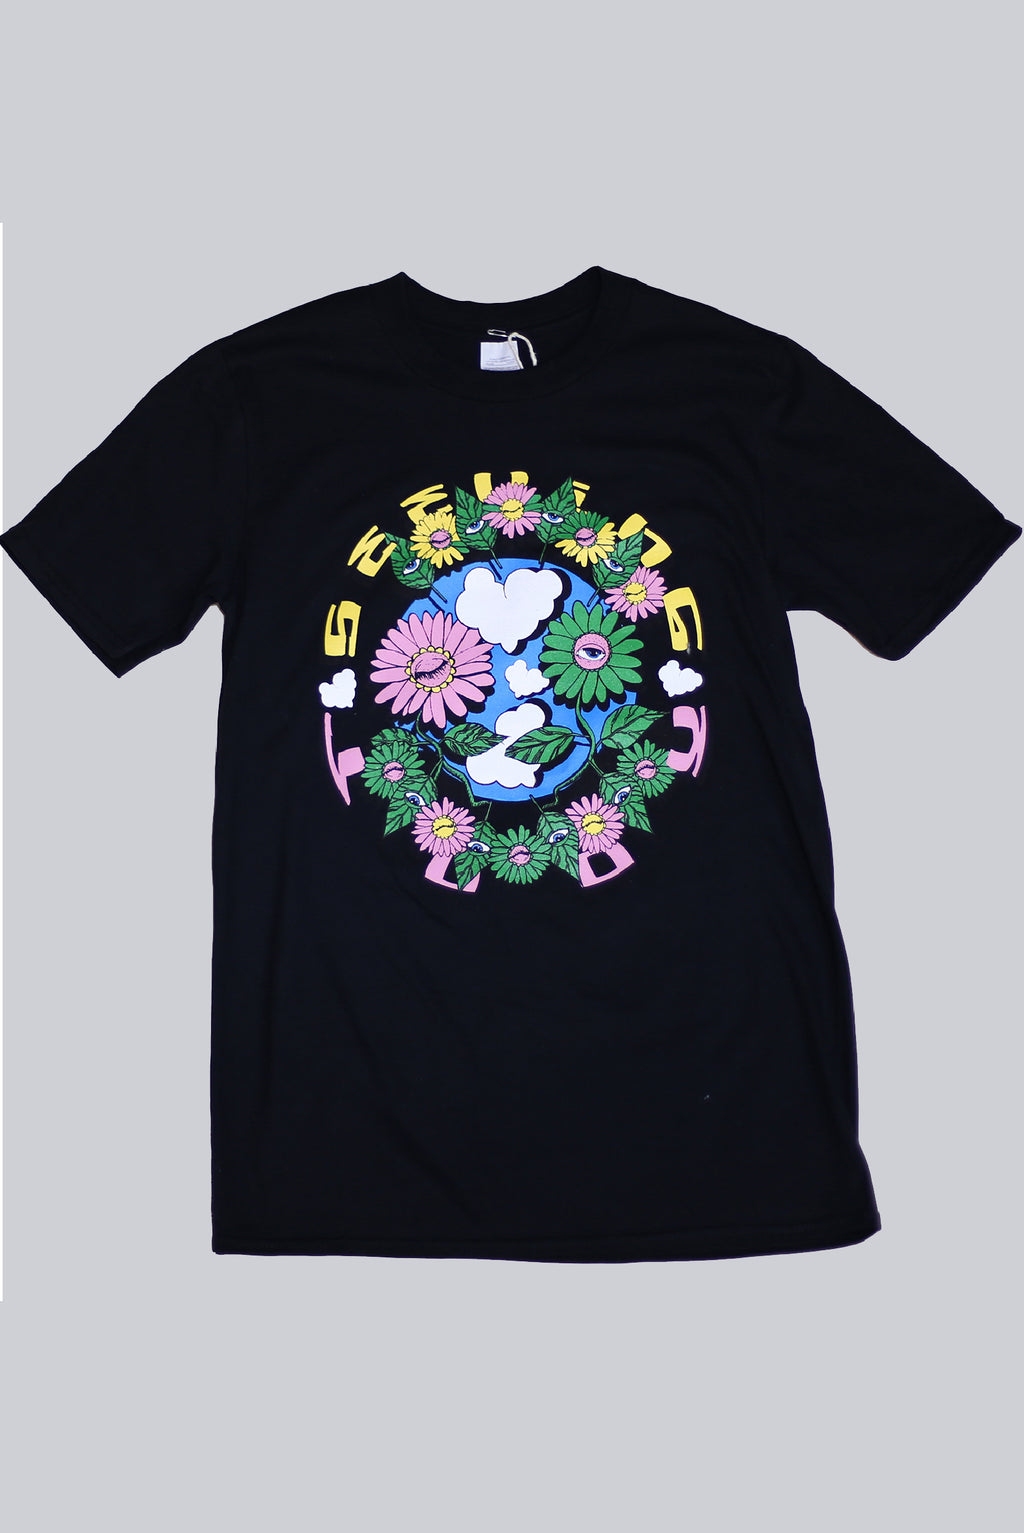 'Plant Friends' black T-shirt